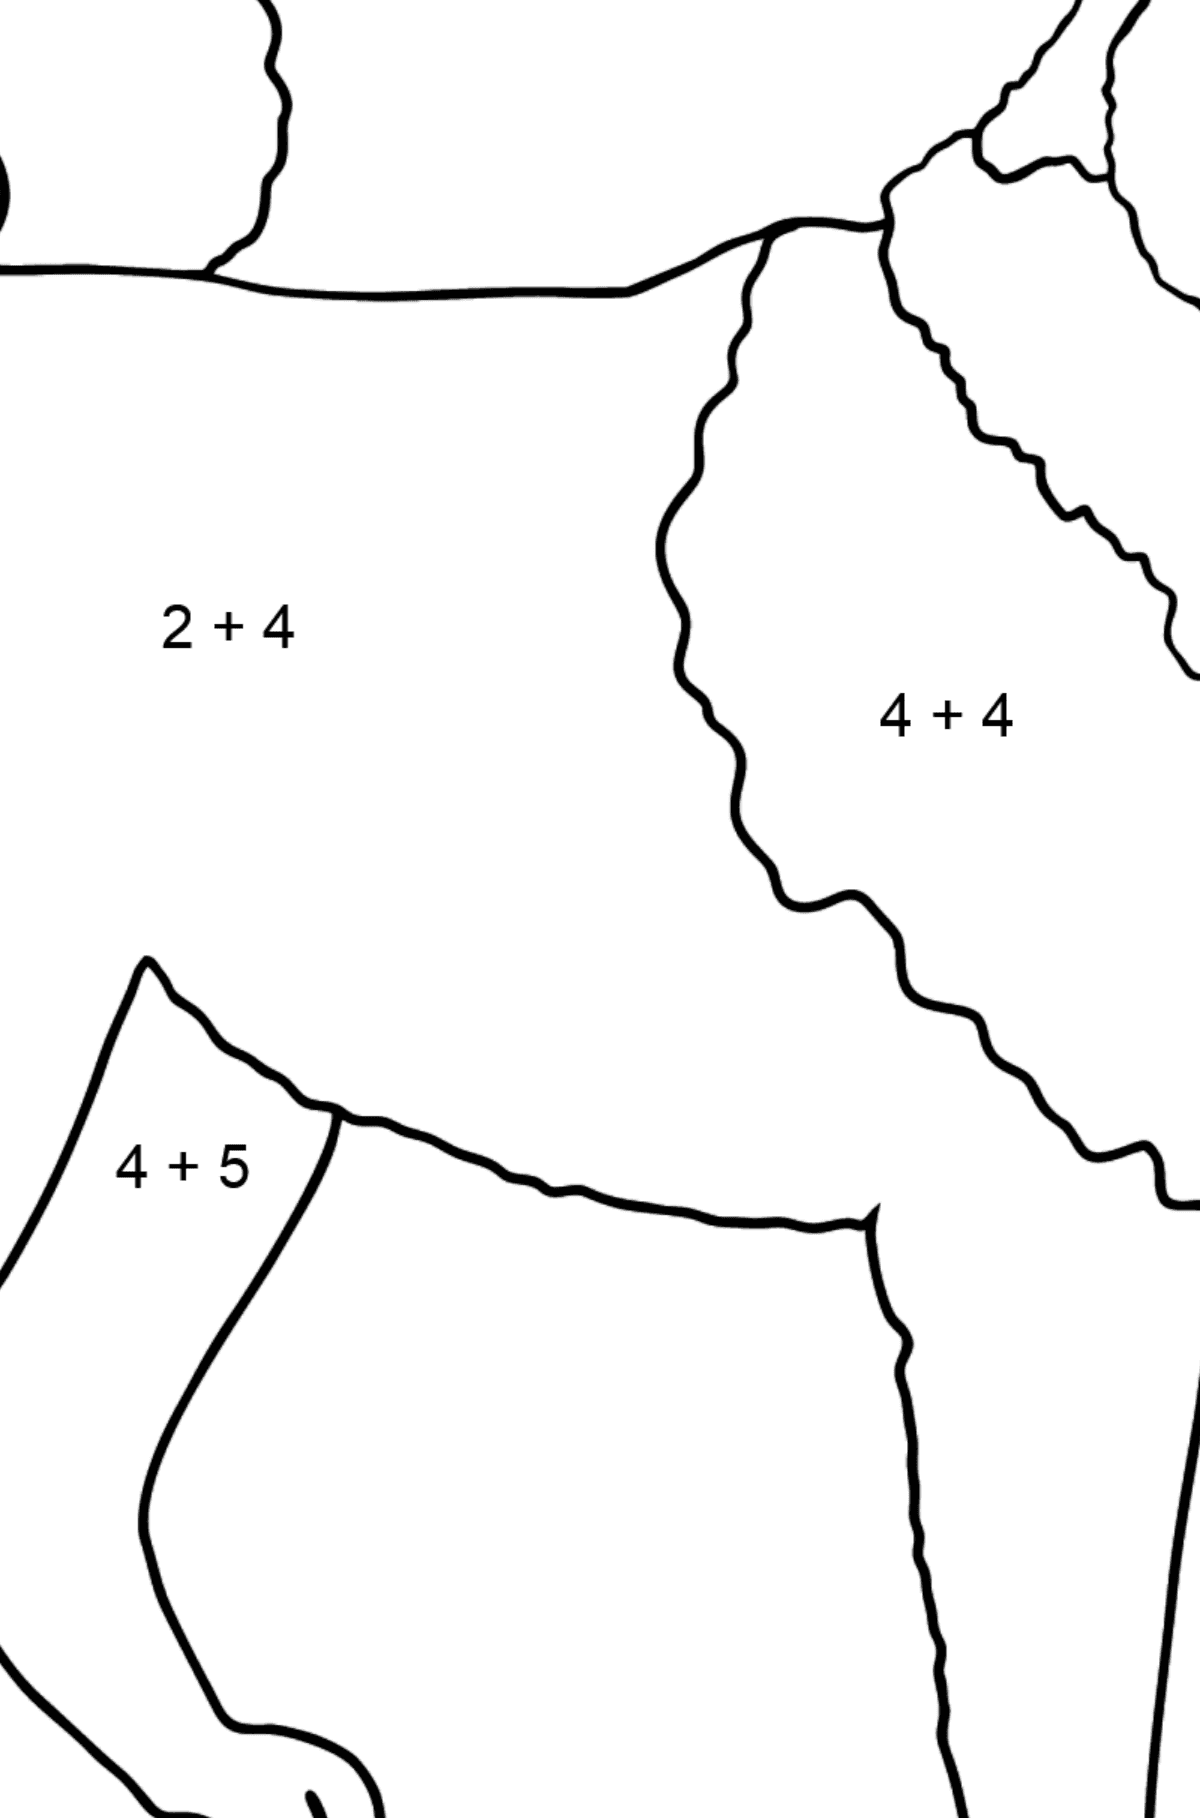 Siberian Husky coloring page - Math Coloring - Addition for Kids